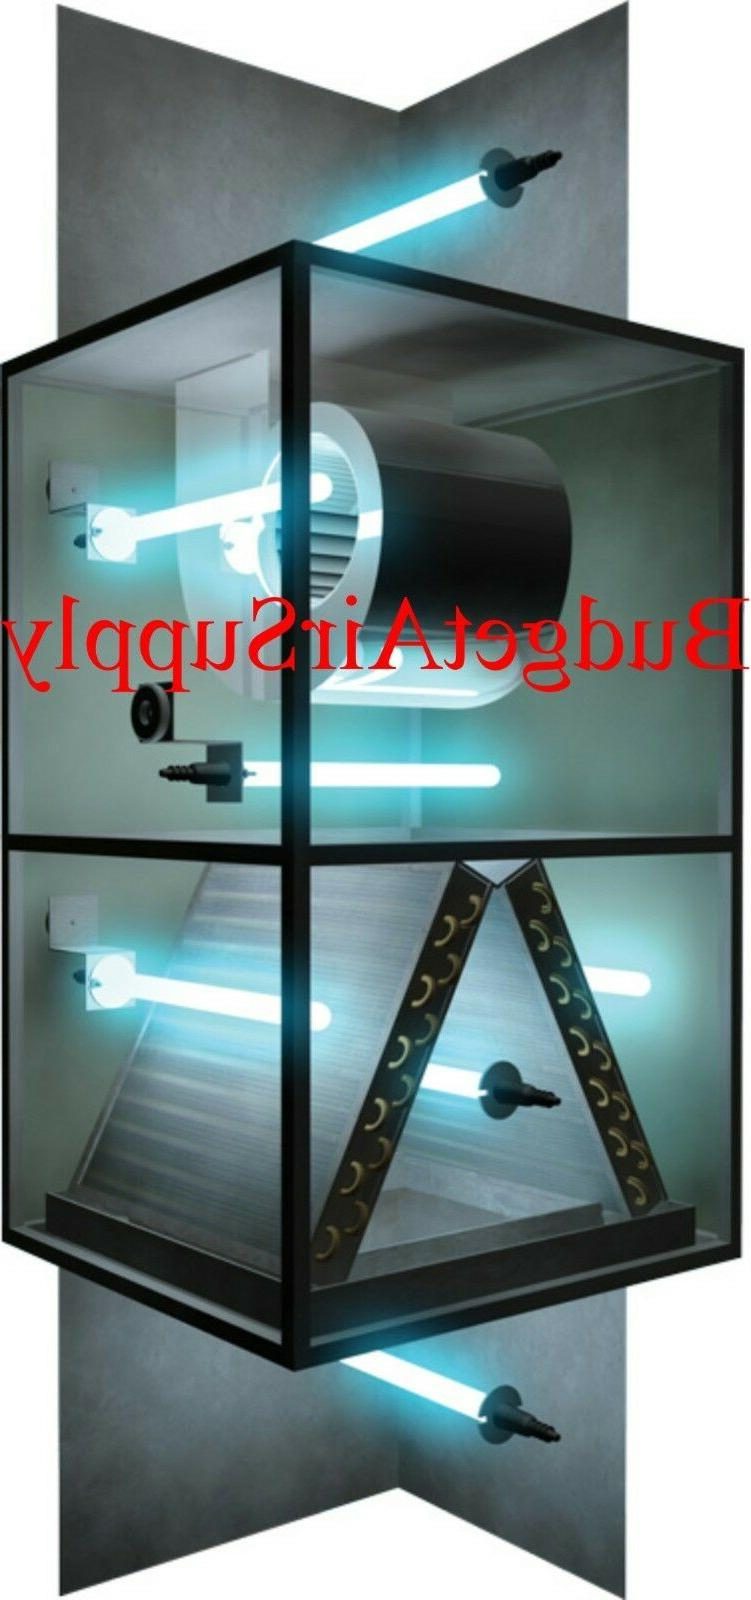 UV LIGHT Kit Purifier HVAC 120 for Air Conditioner Whole House